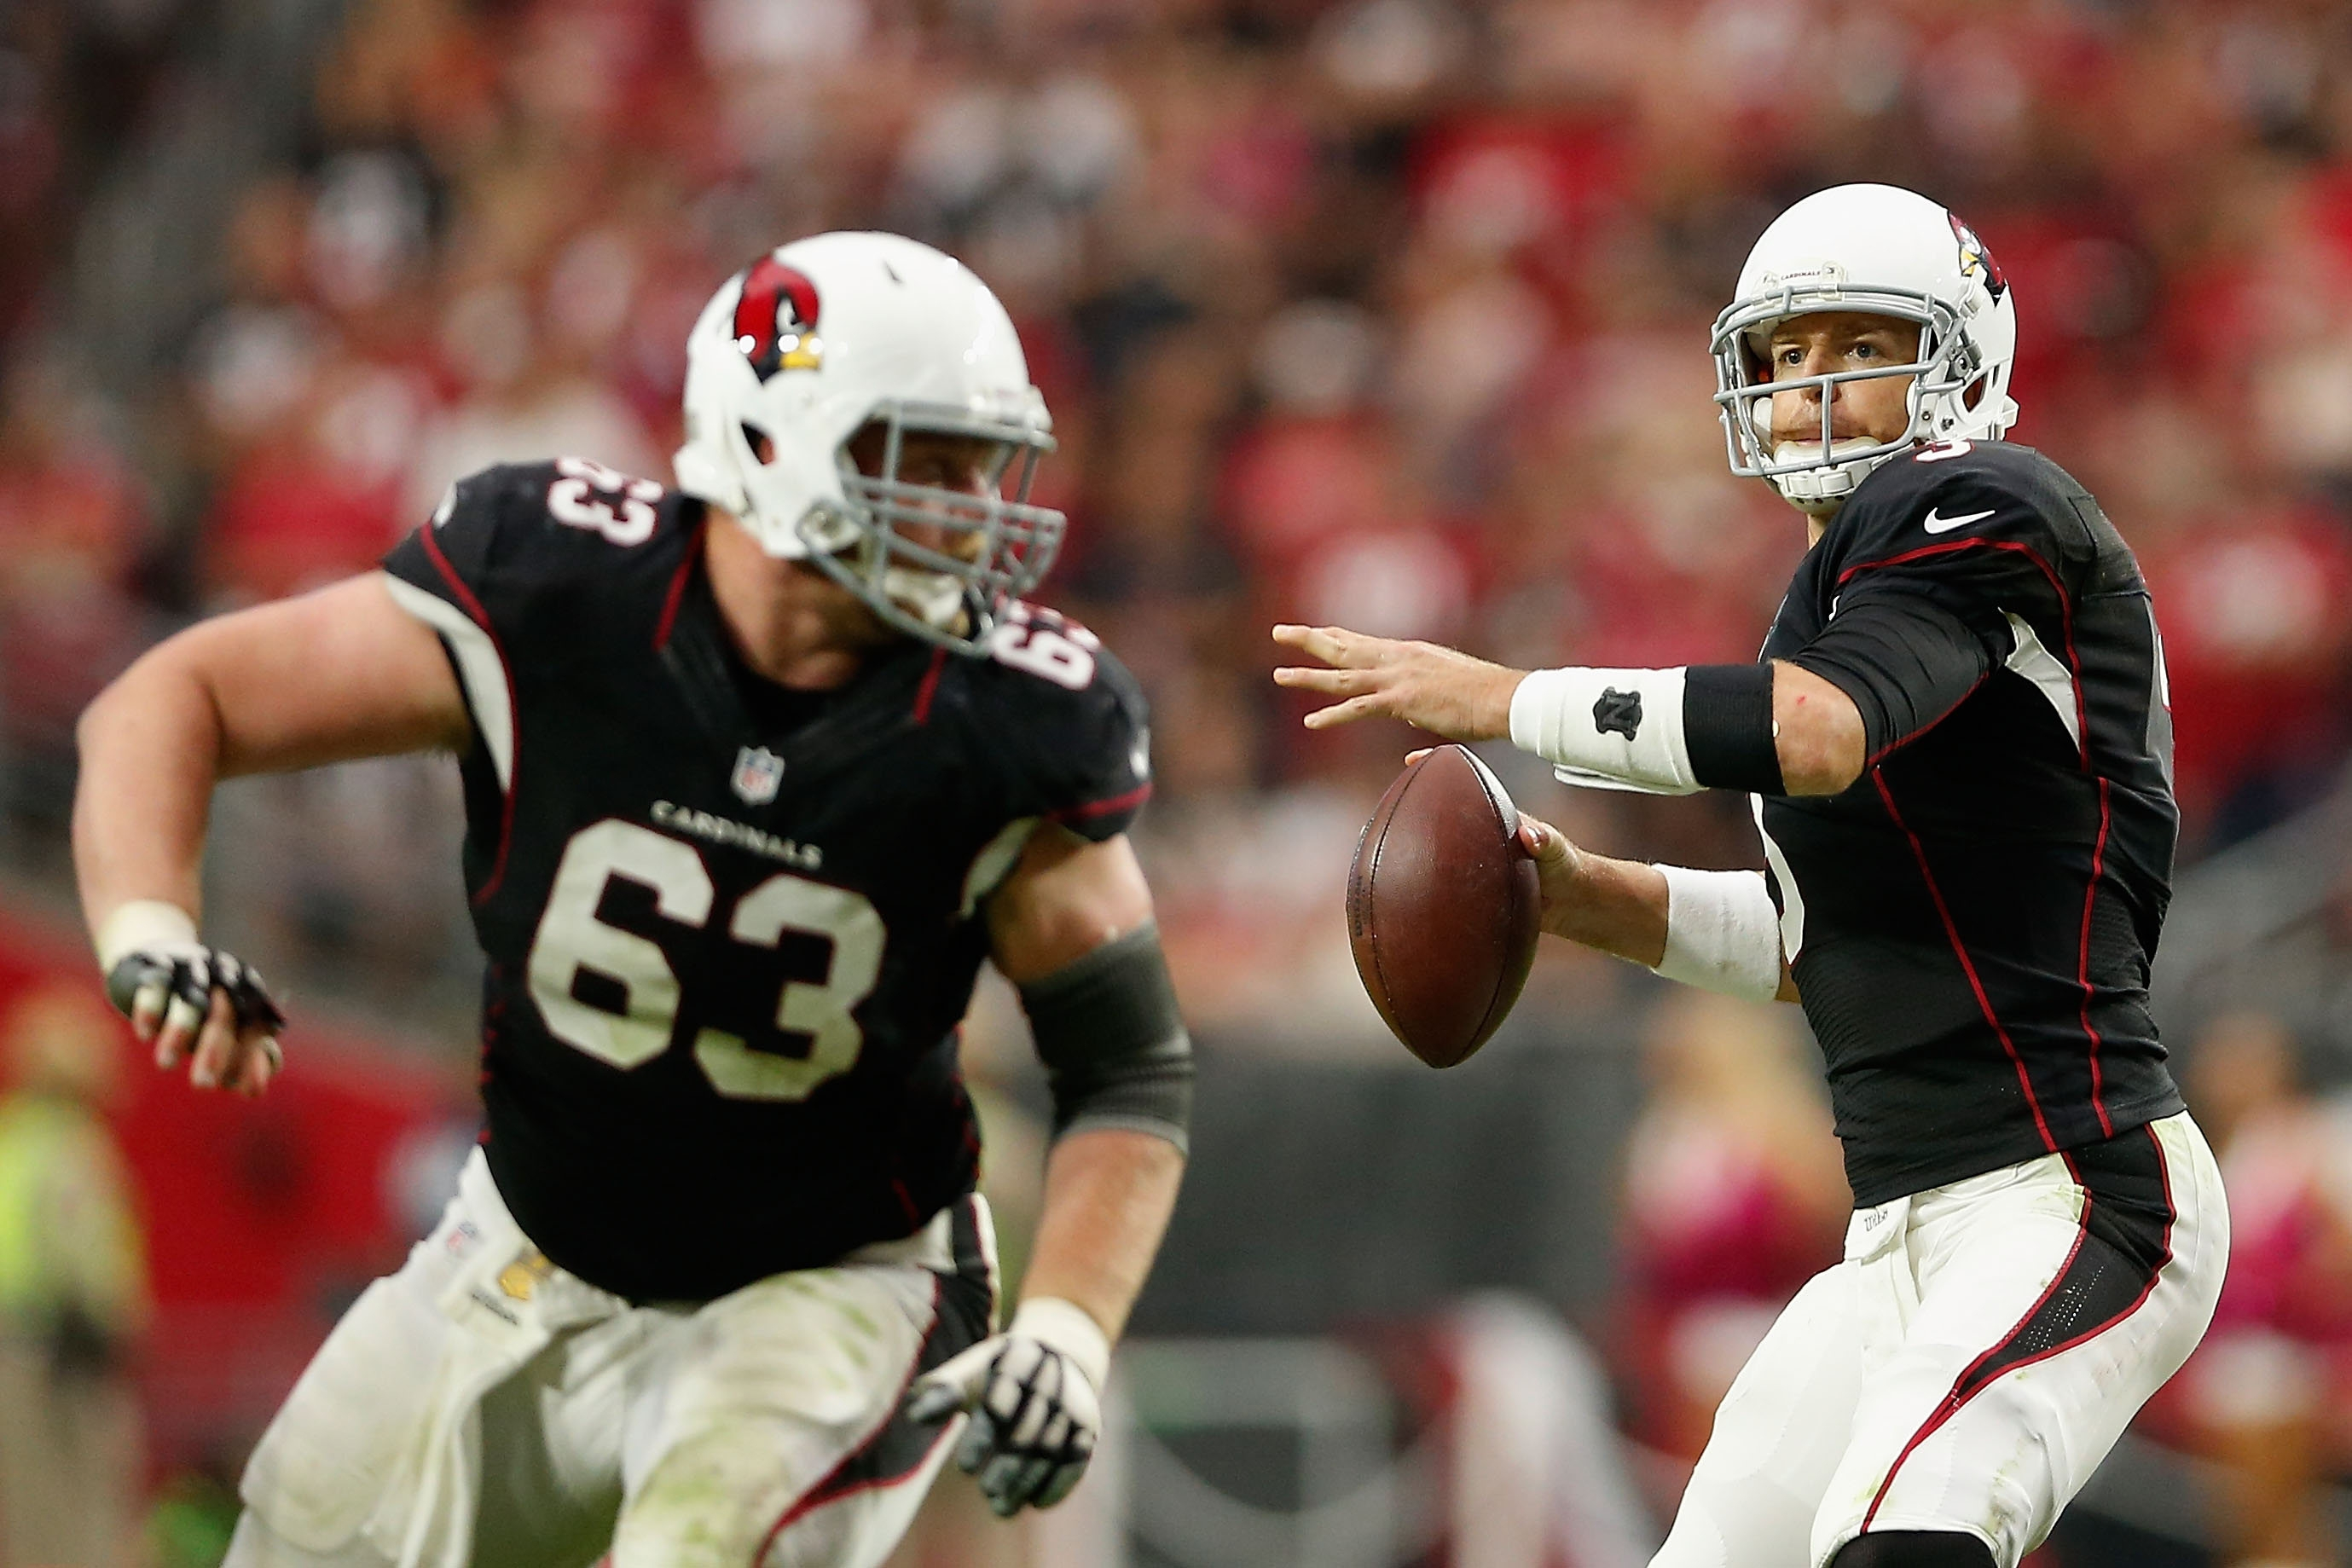 Arizona Cardinals quarterback Carson Palmer is coming off a tremendous regular season in which he threw for 35 touchdowns, 4,671 yards and a 104.5 passer rating. The Cards led the league in offense in 2015. (Getty Images)